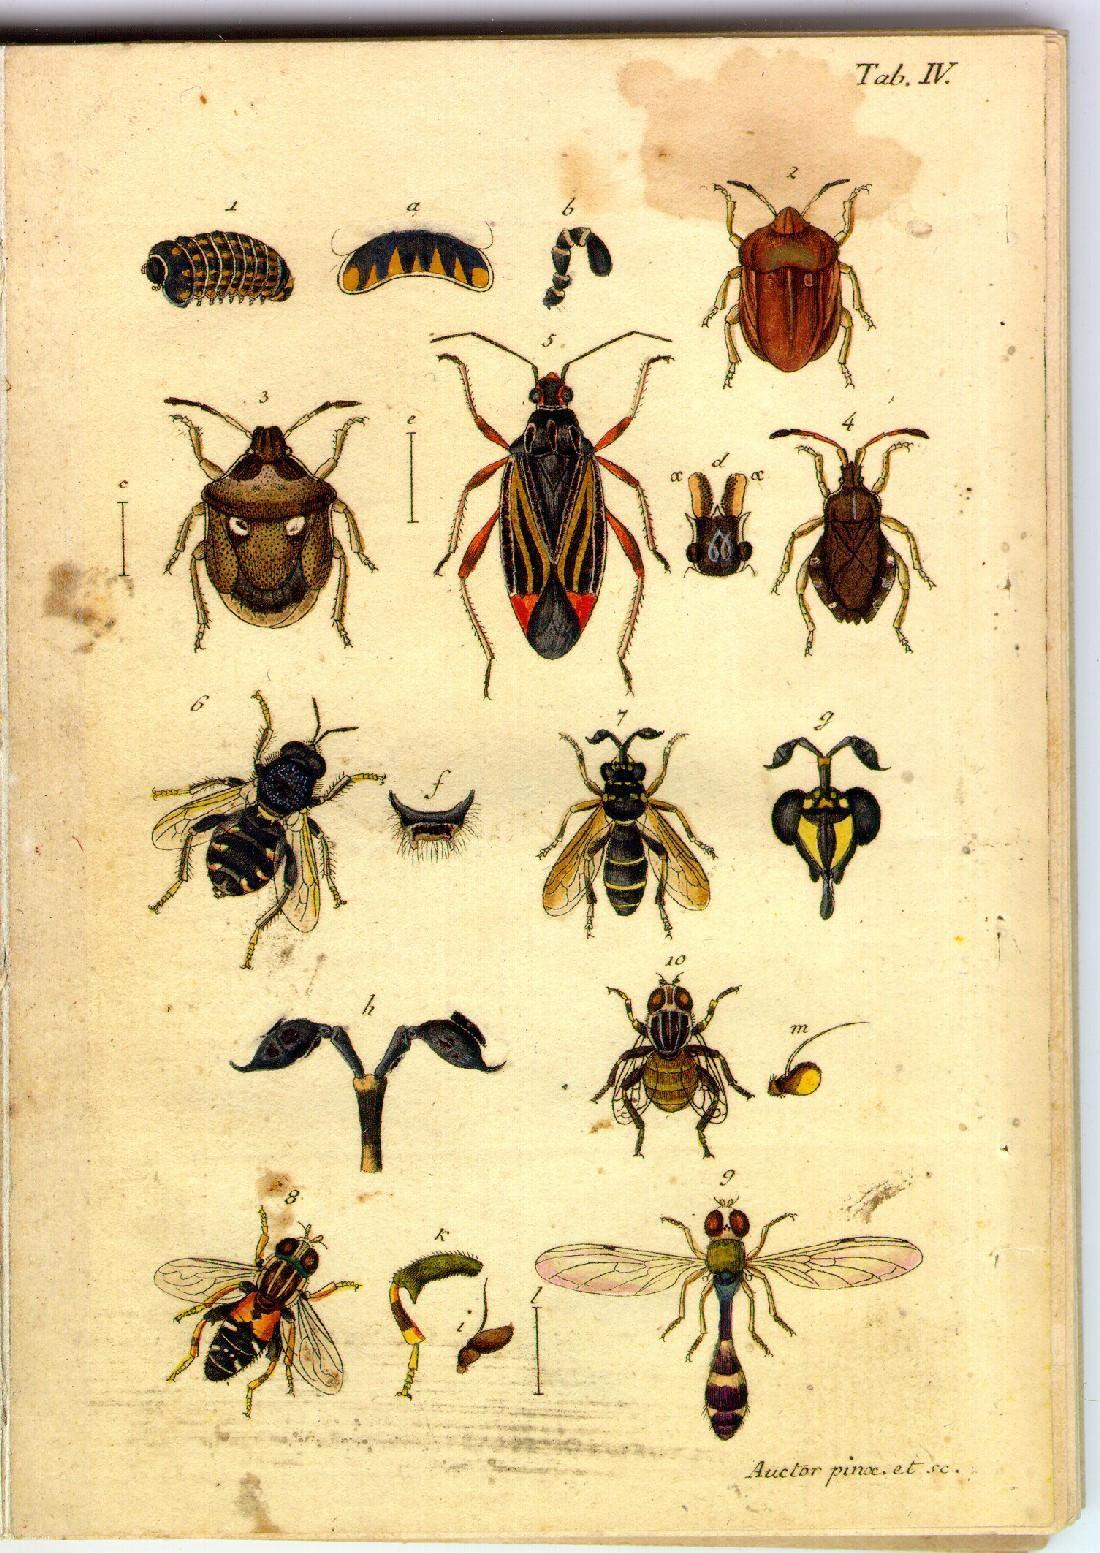 Illustrations of beetles and bees,  Image number:sturm-tab-iv